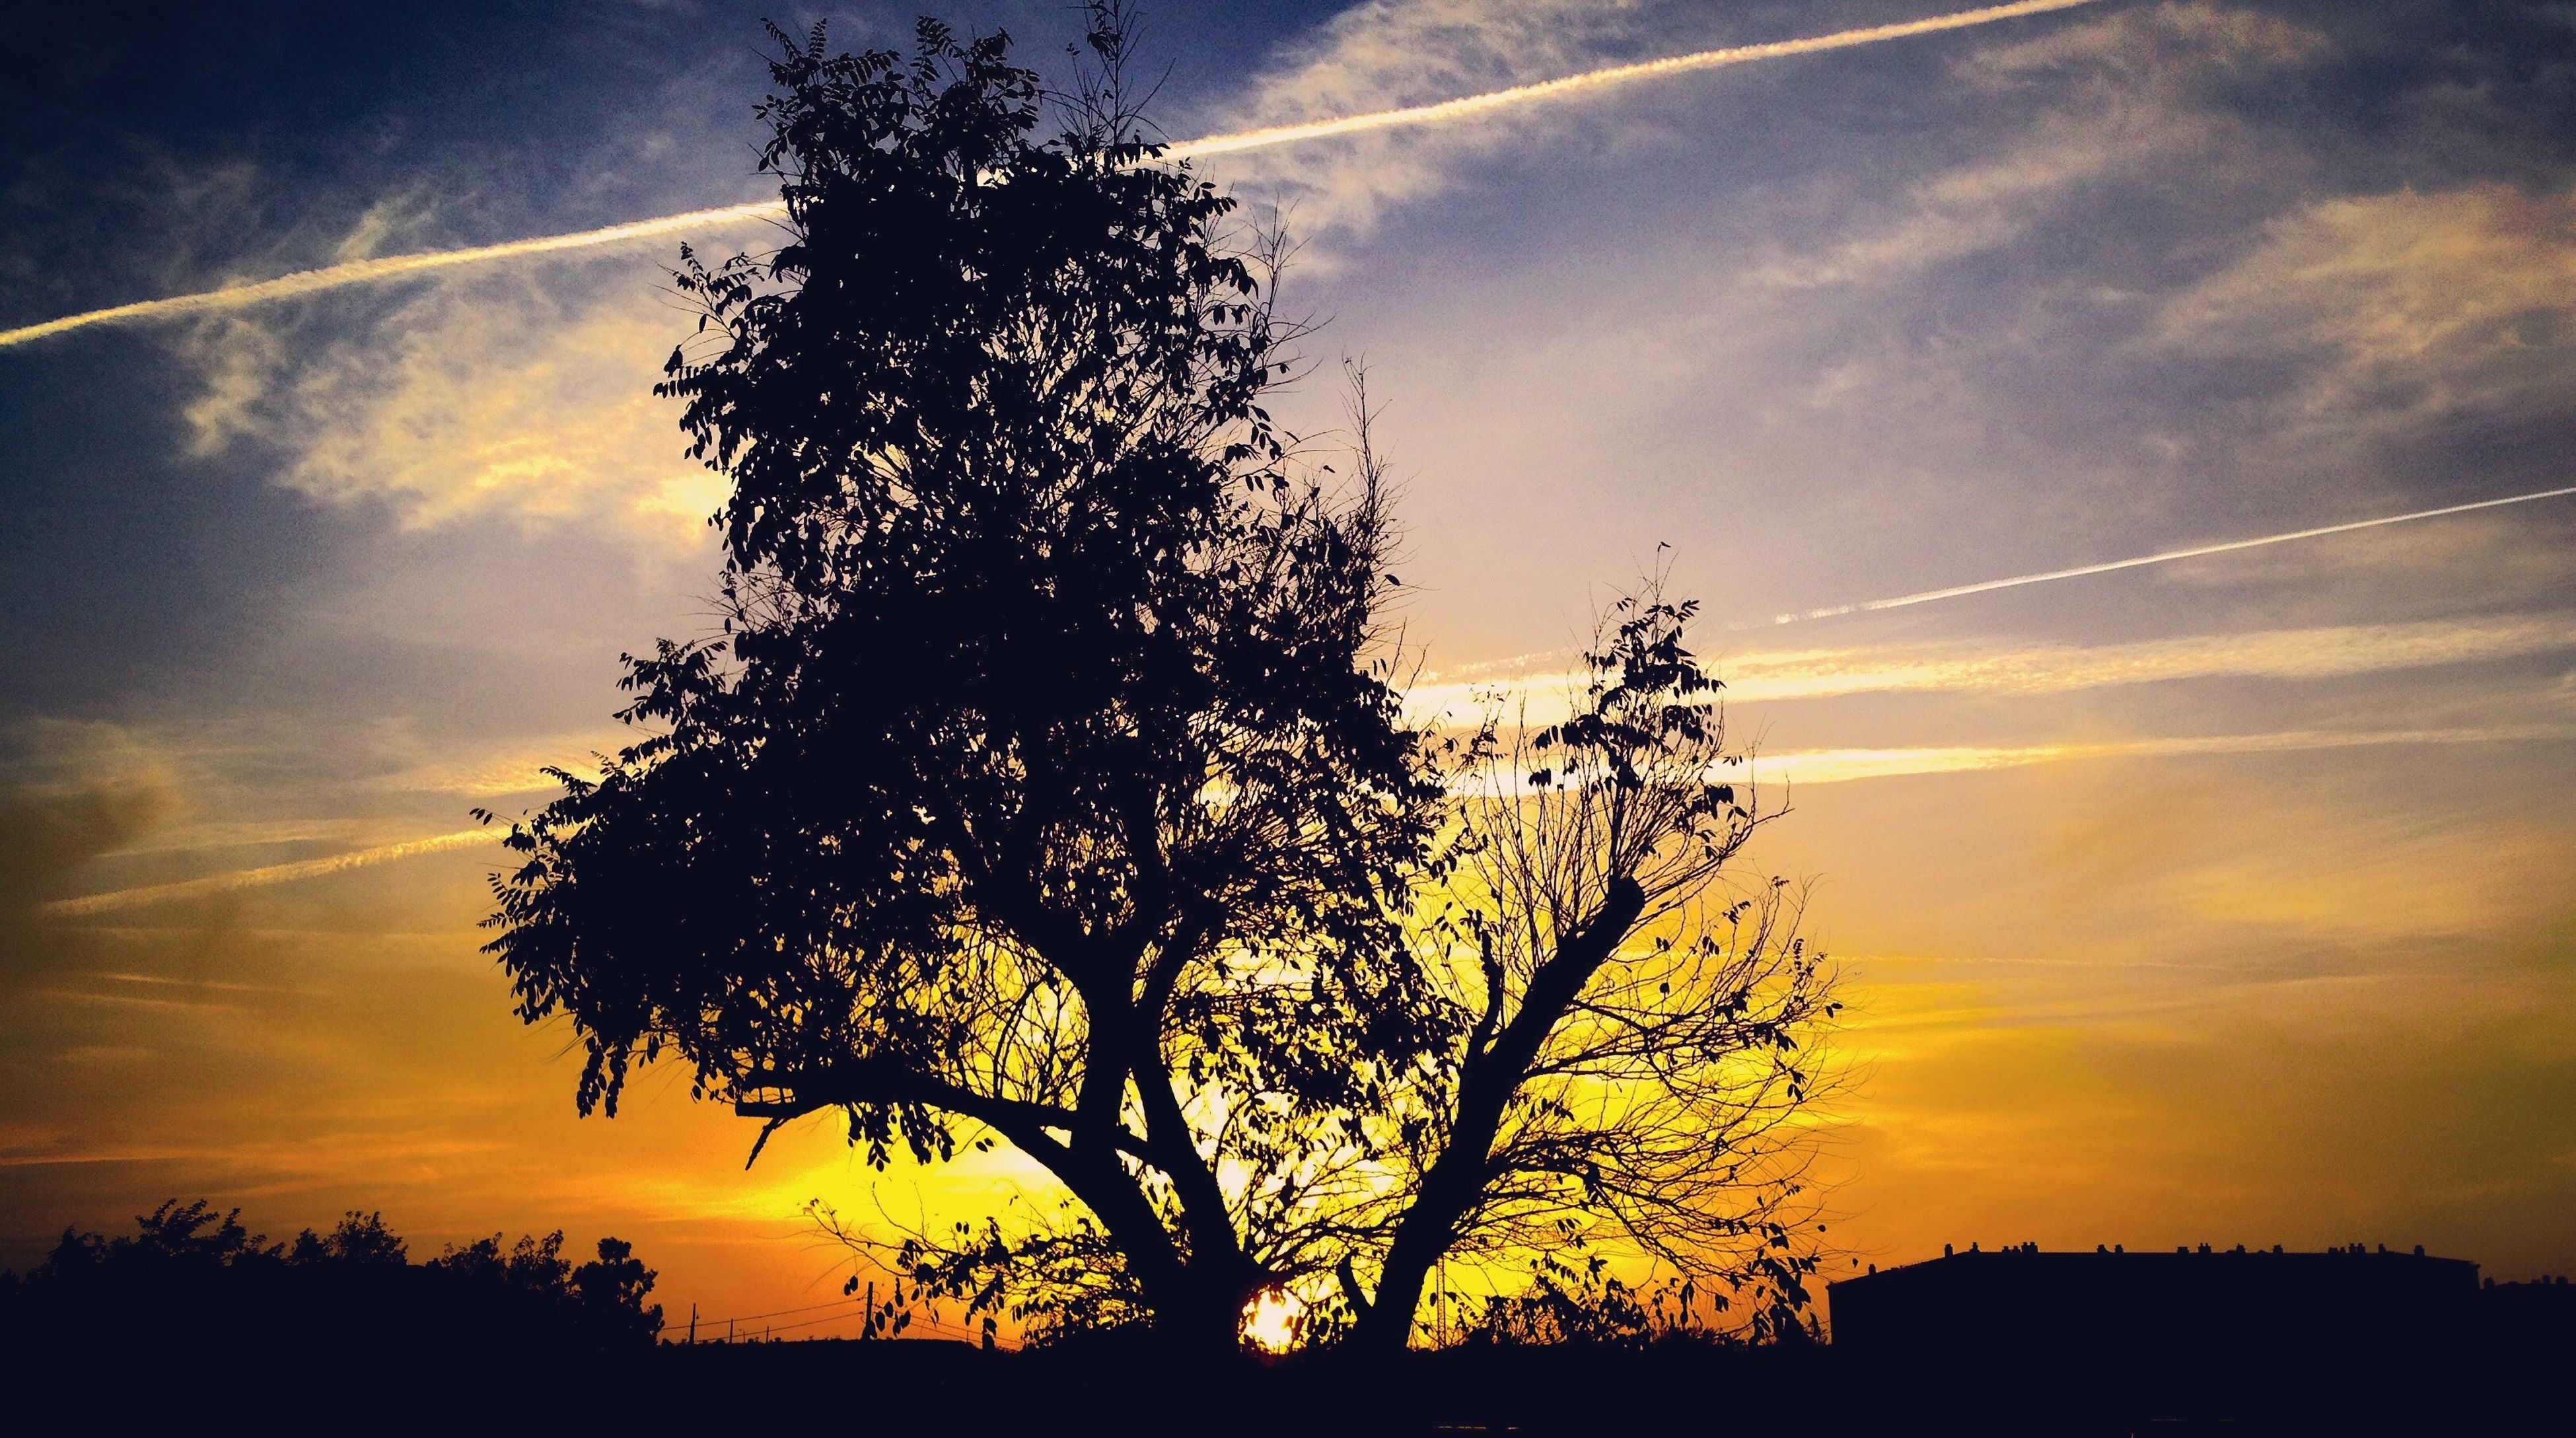 sunset, sky, nature, silhouette, tree, beauty in nature, no people, sun, growth, low angle view, scenics, tranquility, outdoors, cloud - sky, day